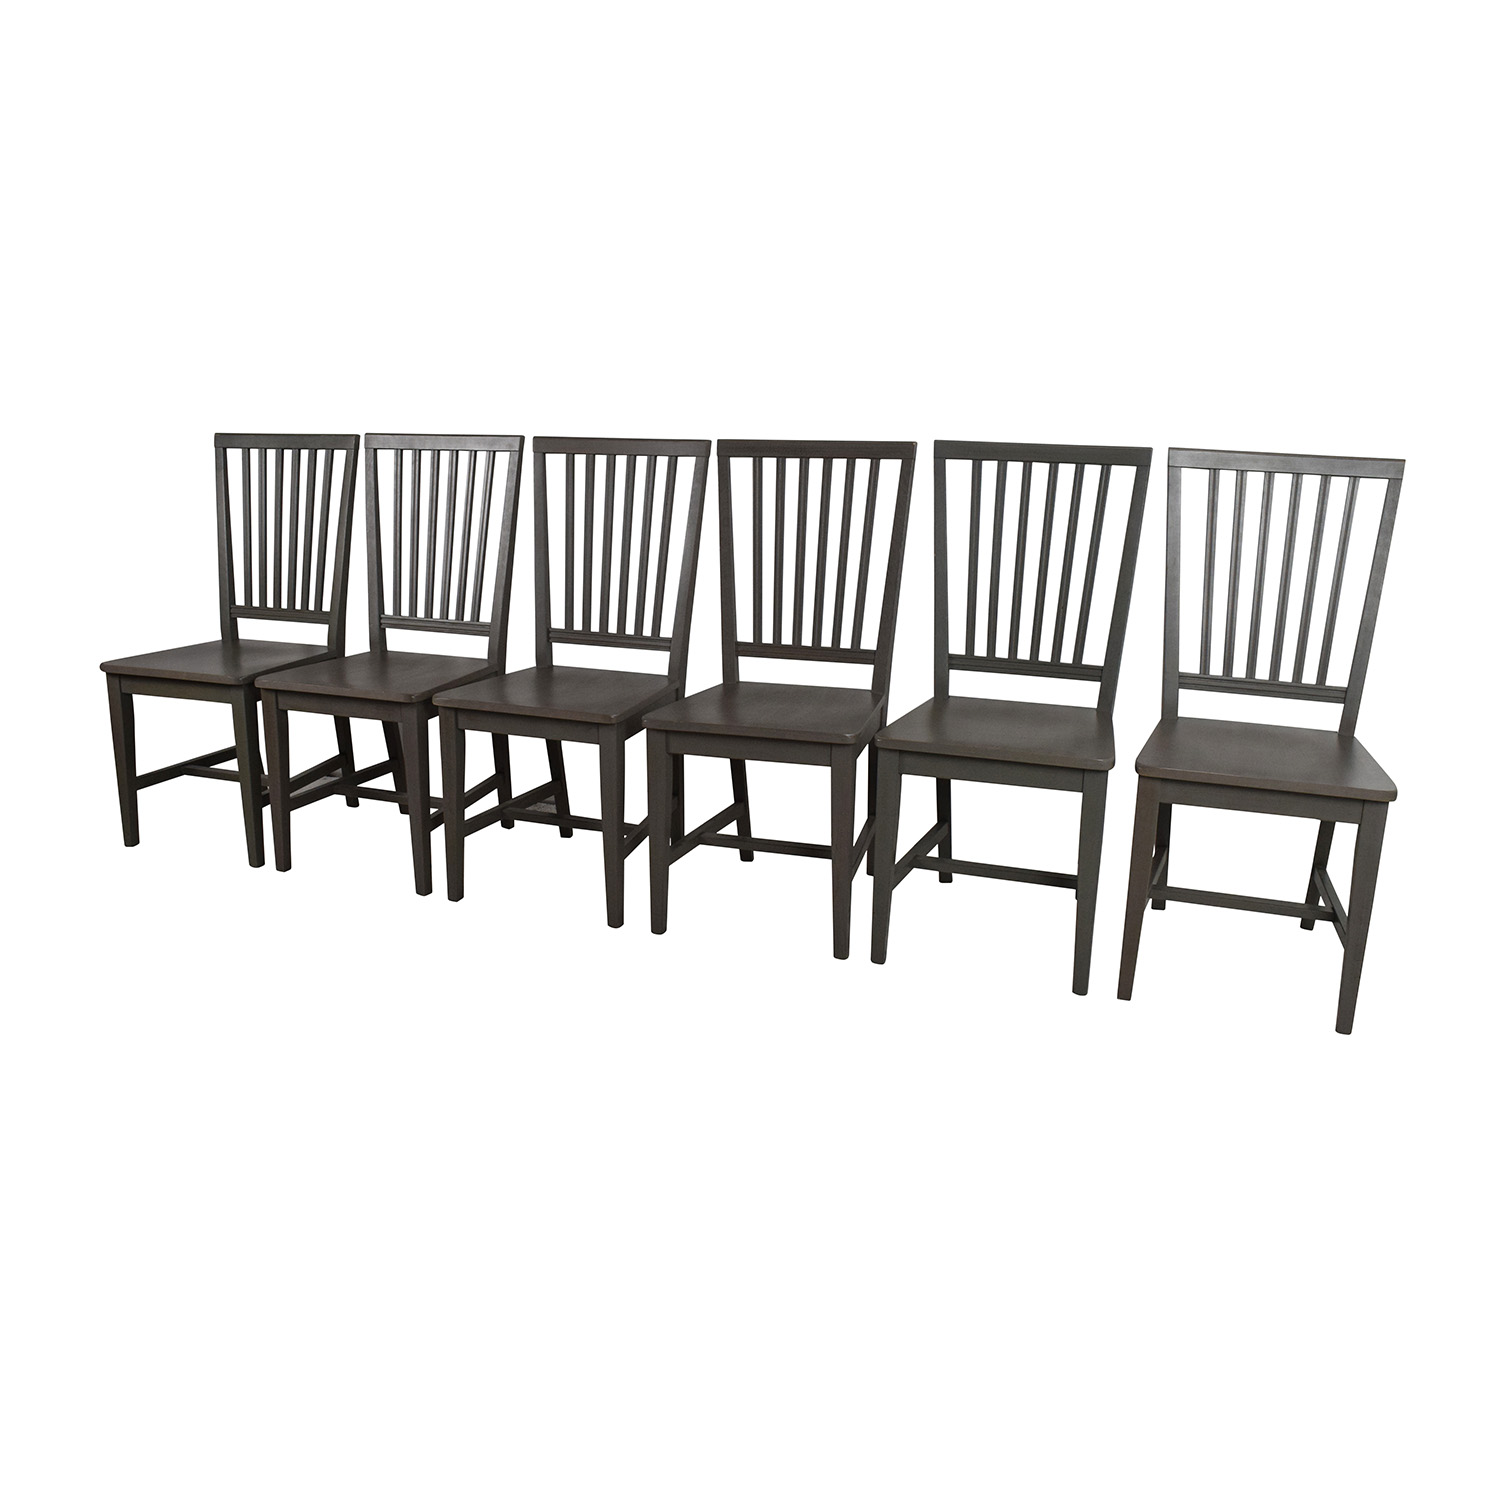 crate and barrel chairs dining chair yoga for seniors 75 off village grigio